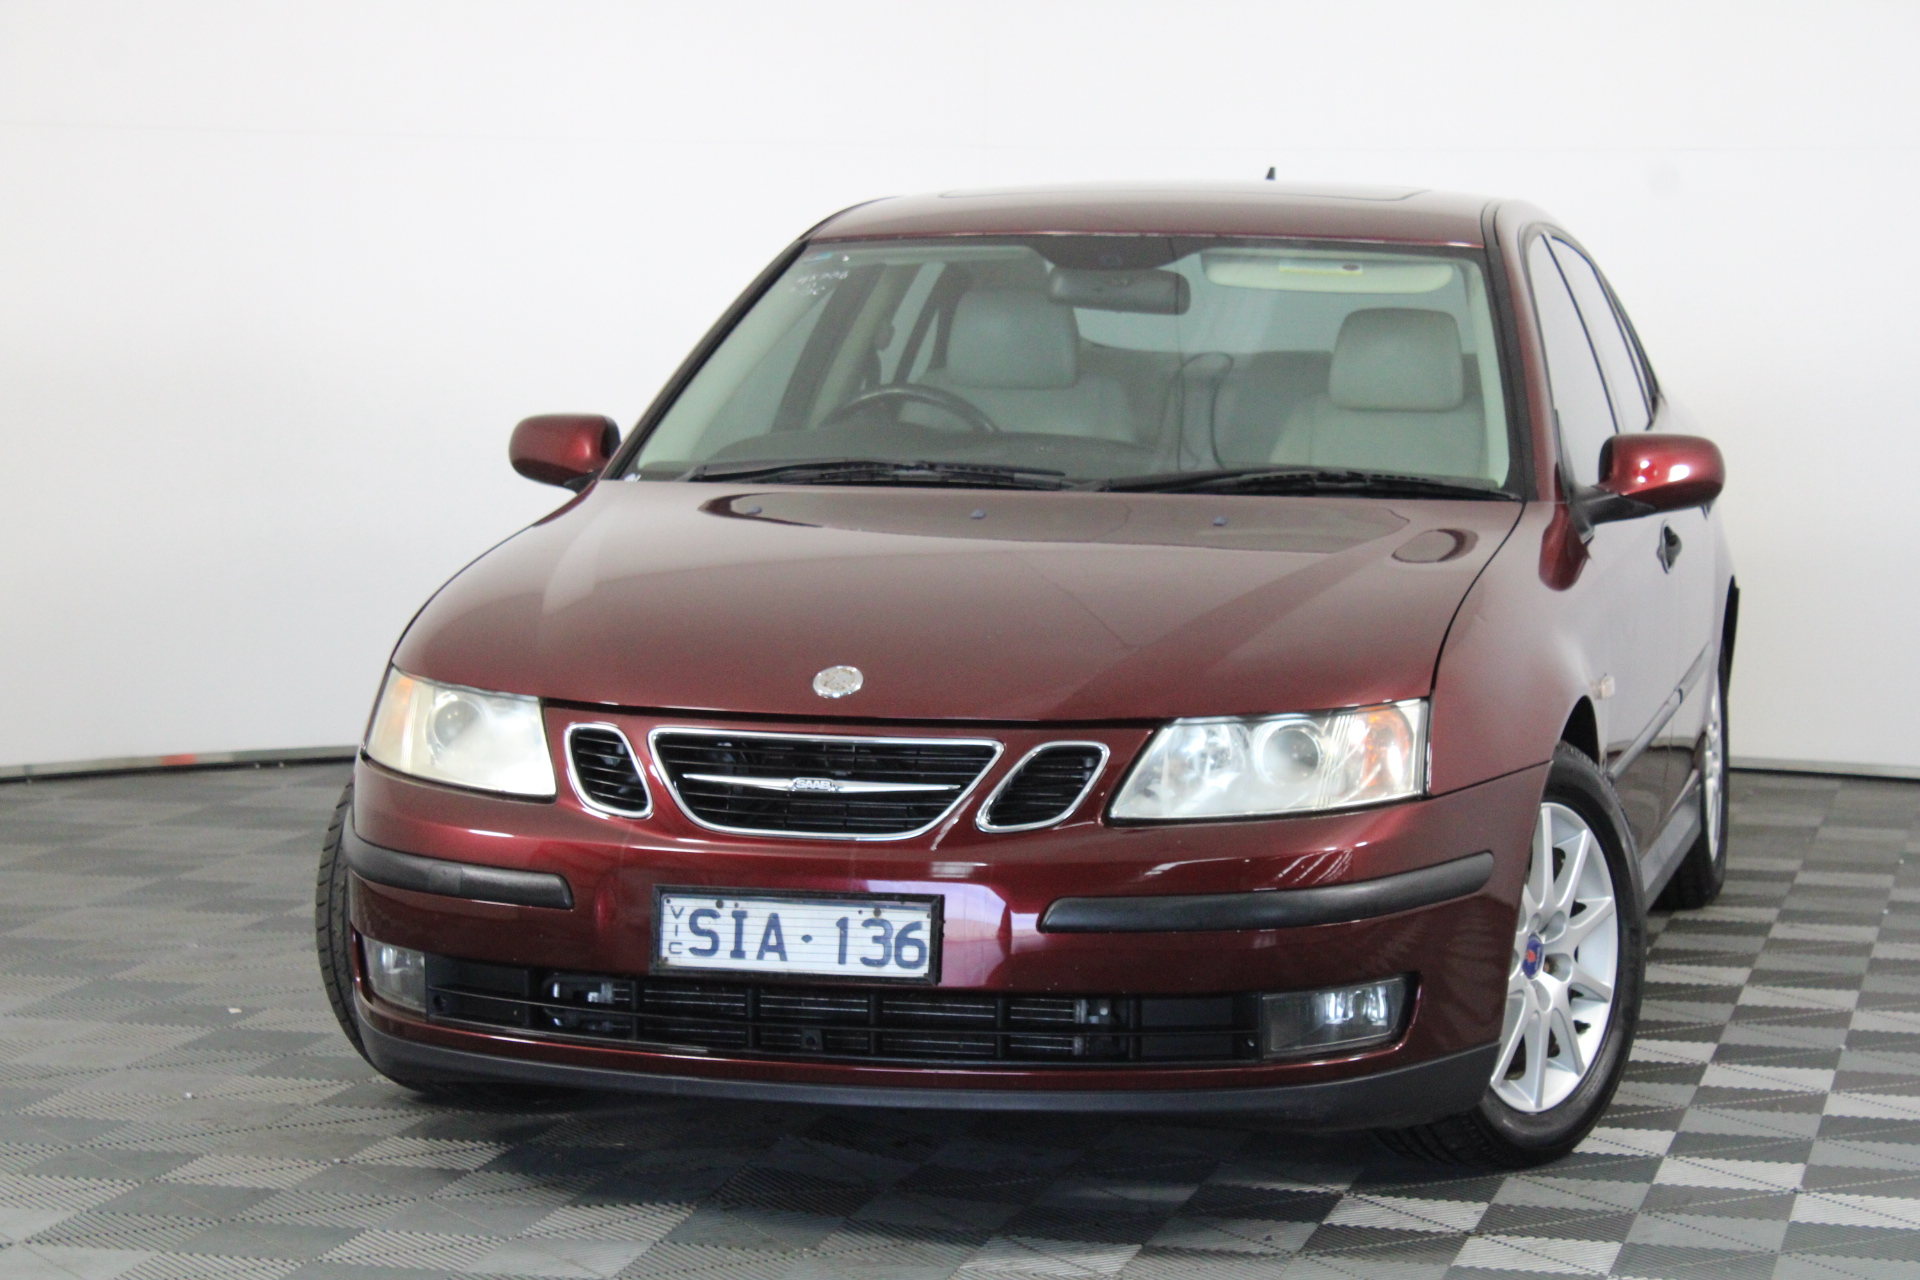 2003 Saab 9-3 ARC 2.0T Automatic Sedan